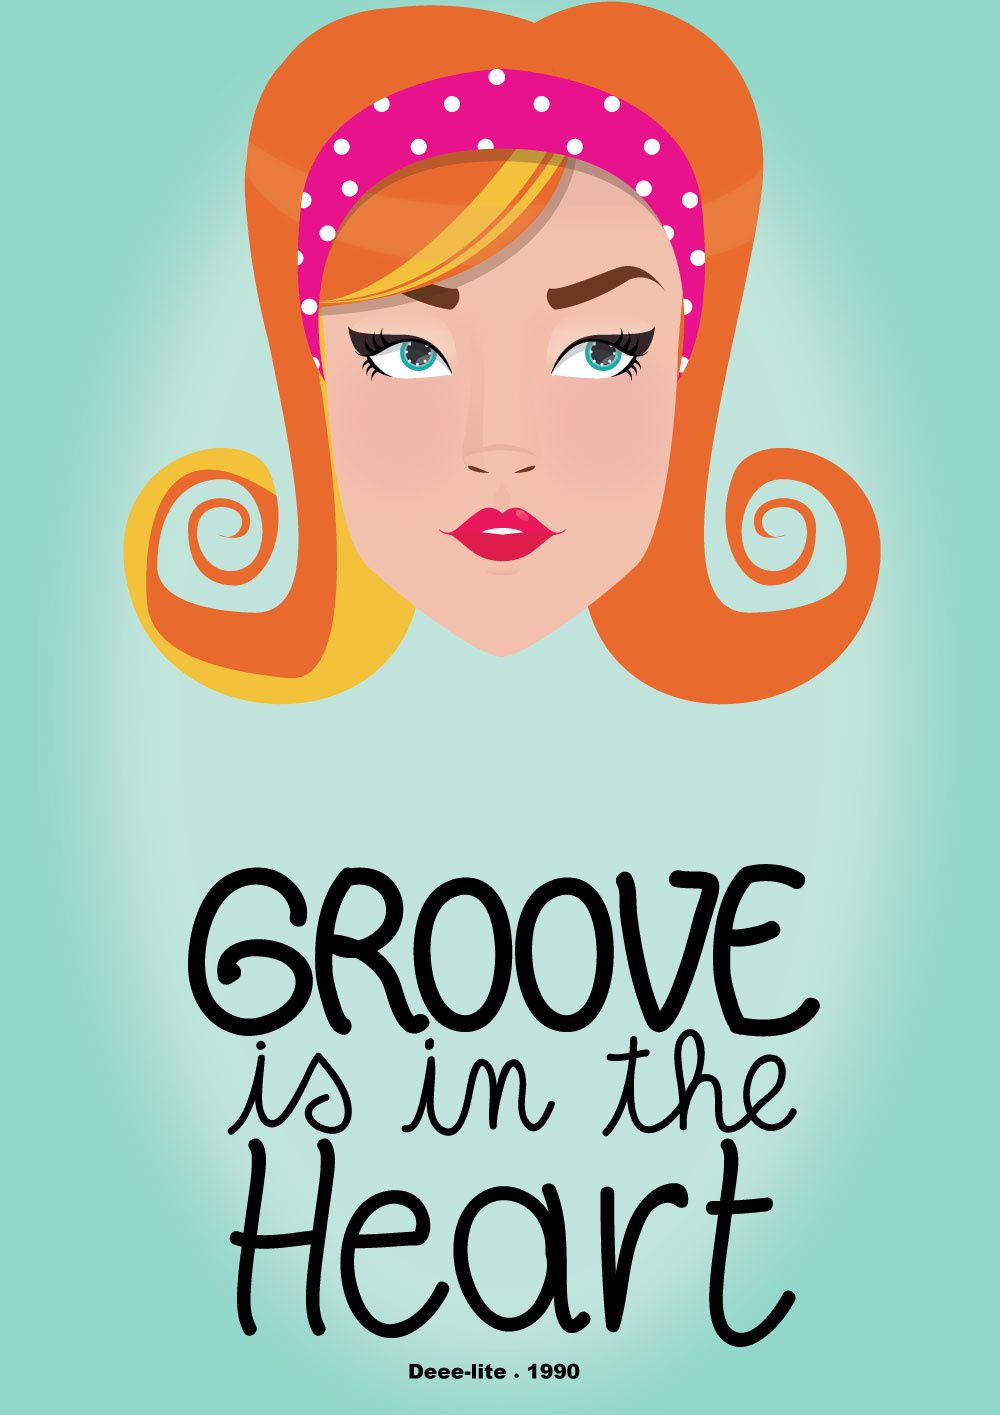 Groove baby! back to the 90's